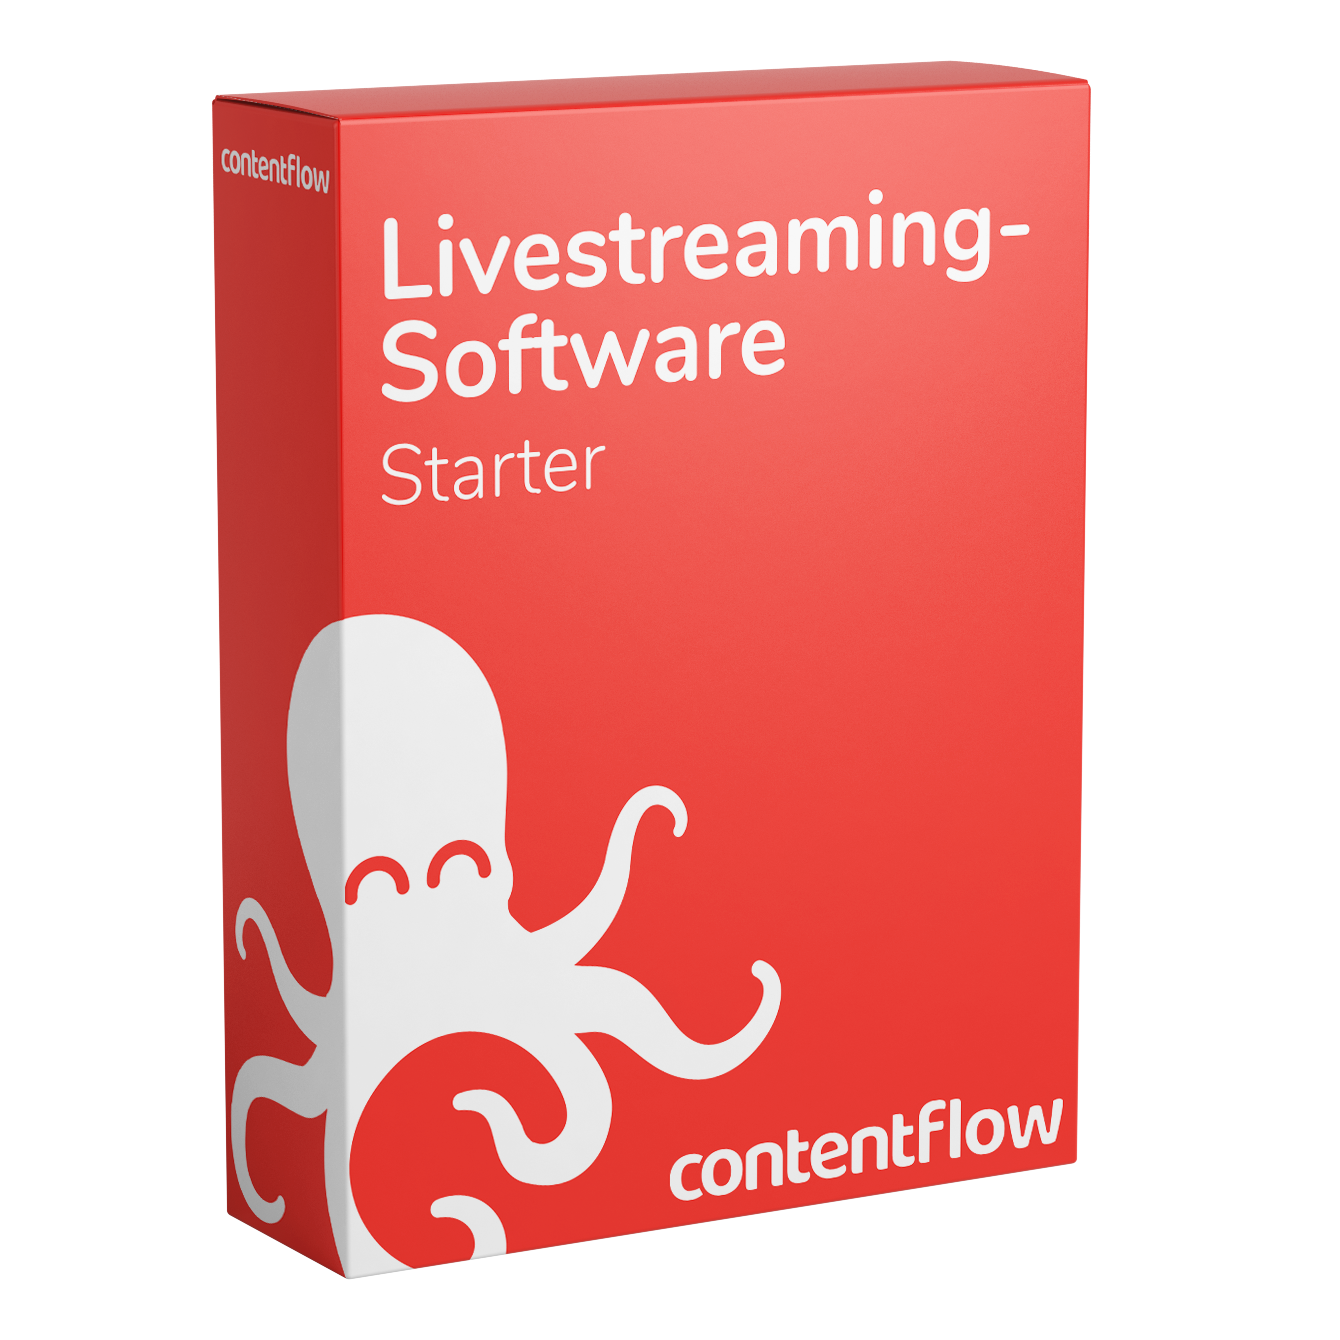 Contentflow Live Streaming Software